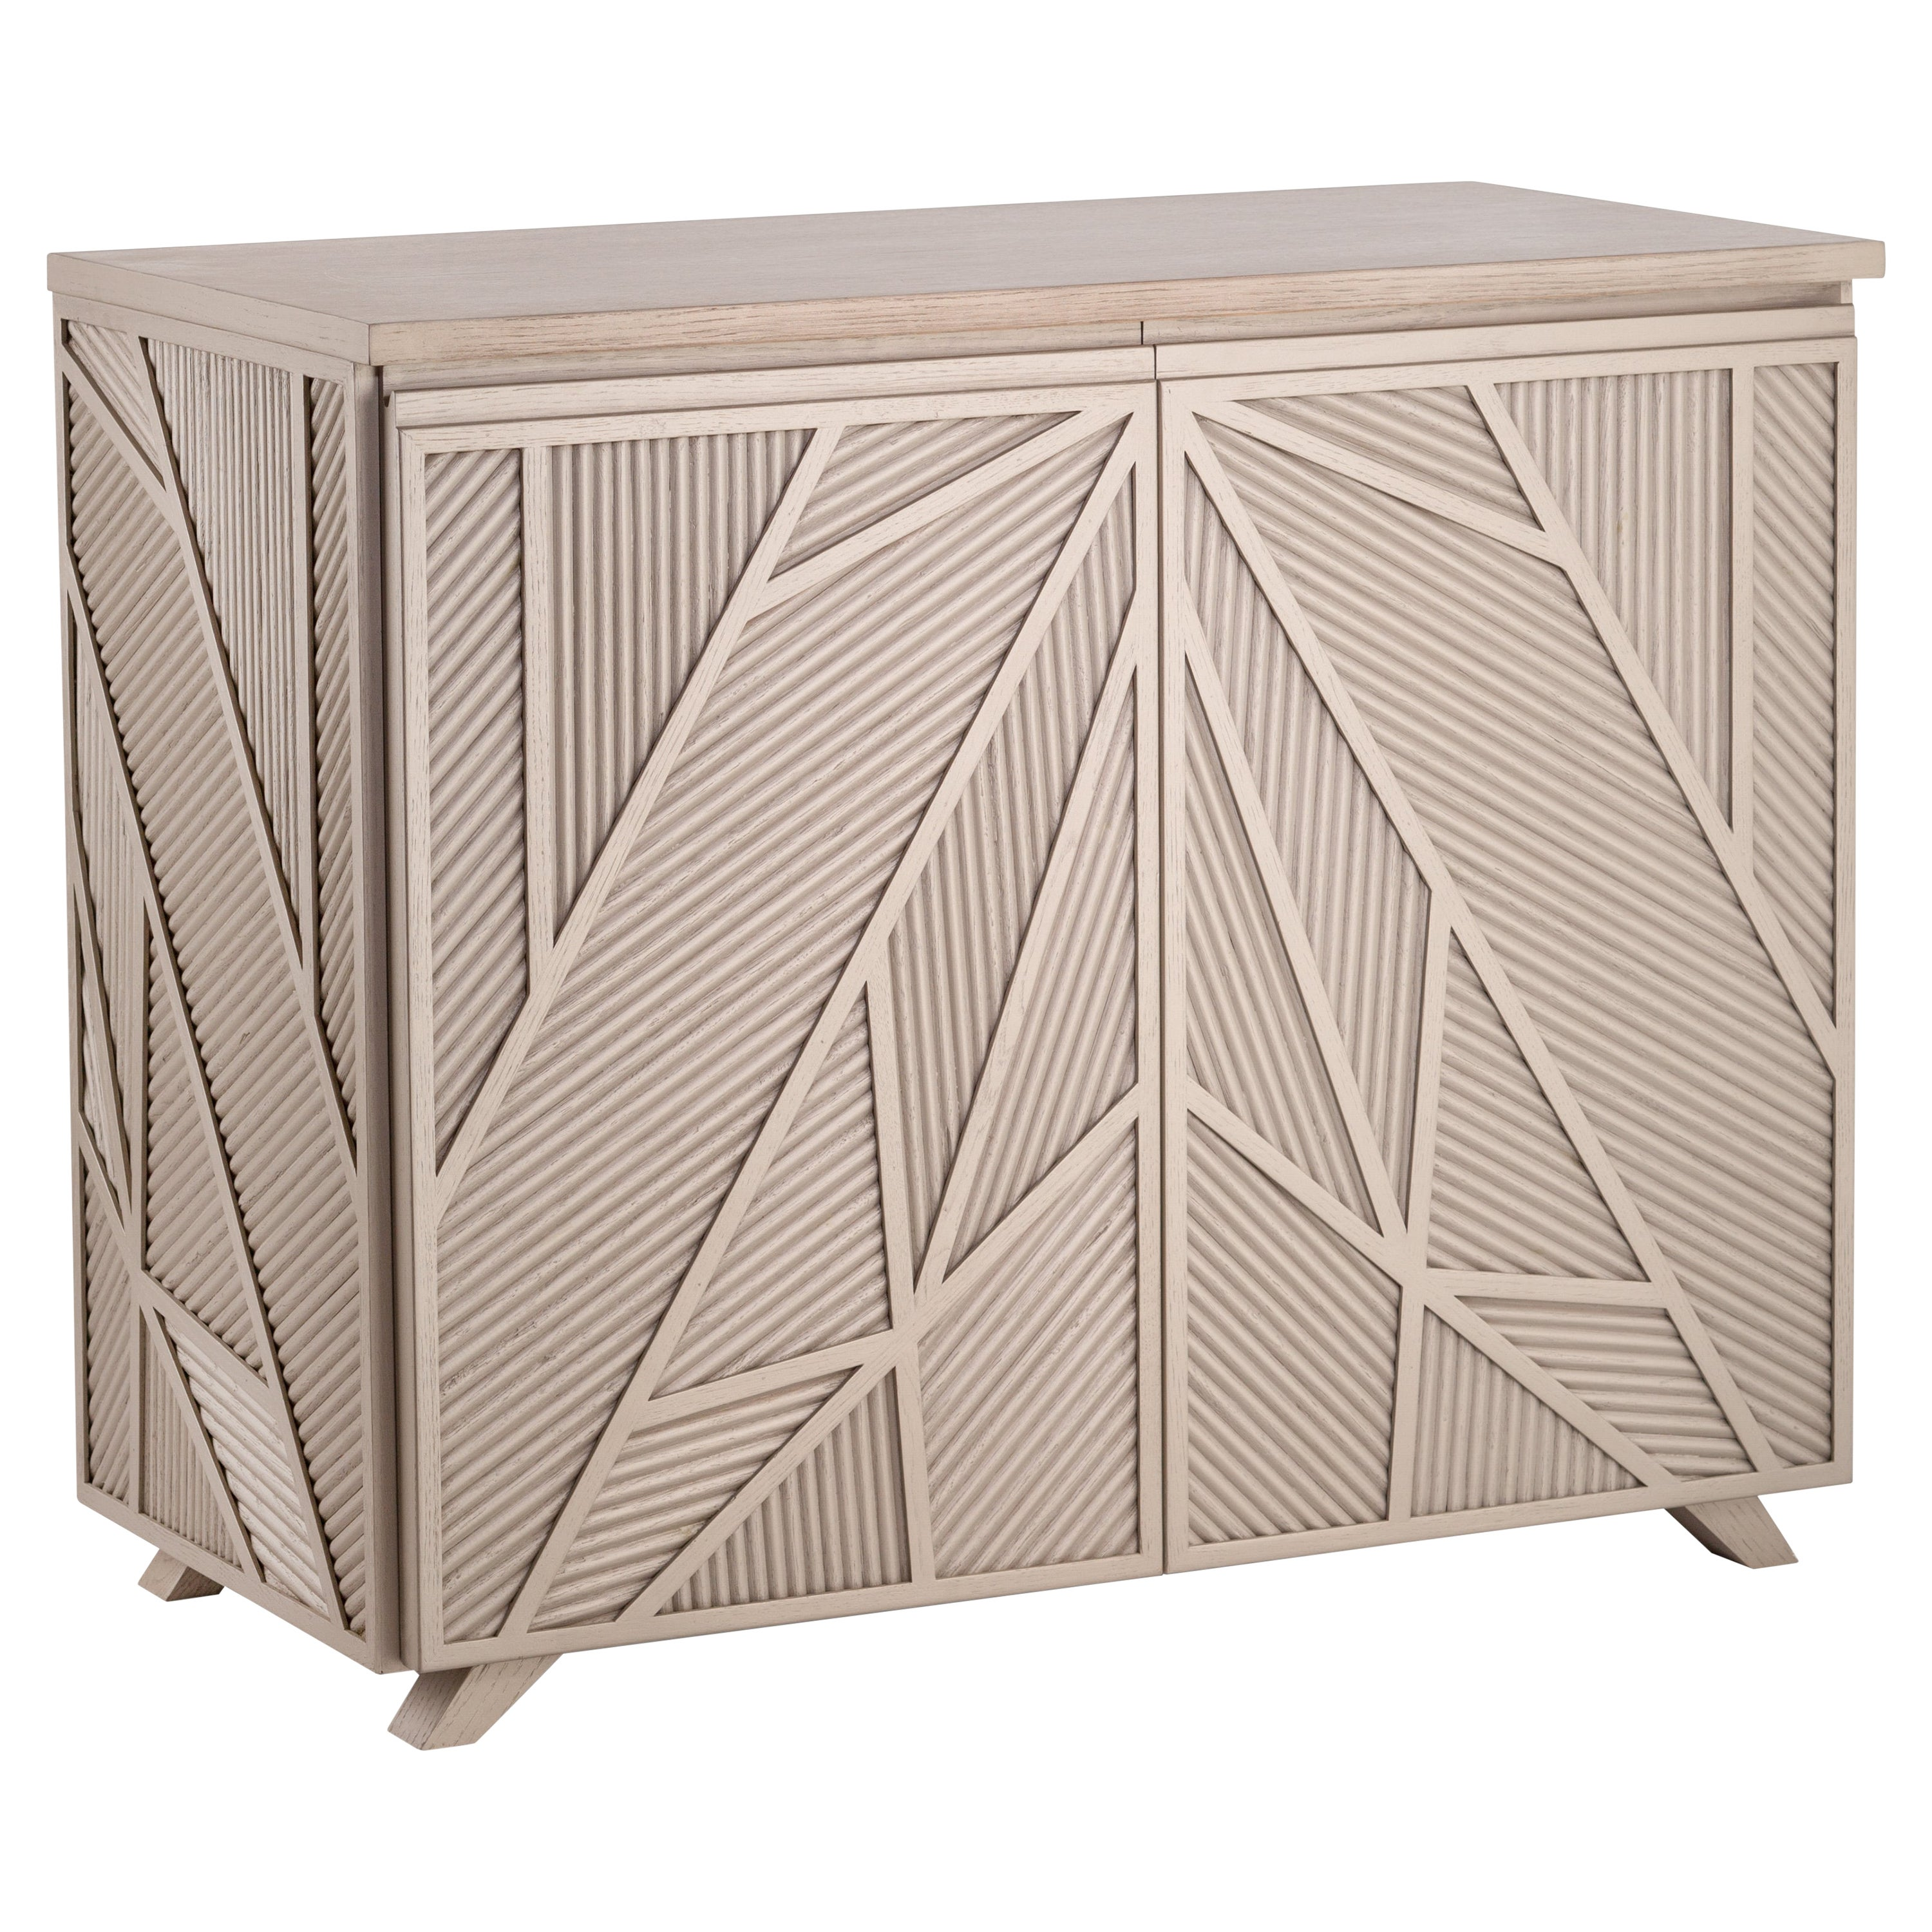 Geometric Oak Sticks Cabinet Inspired from Ancient Egypt Use of Palm Branches